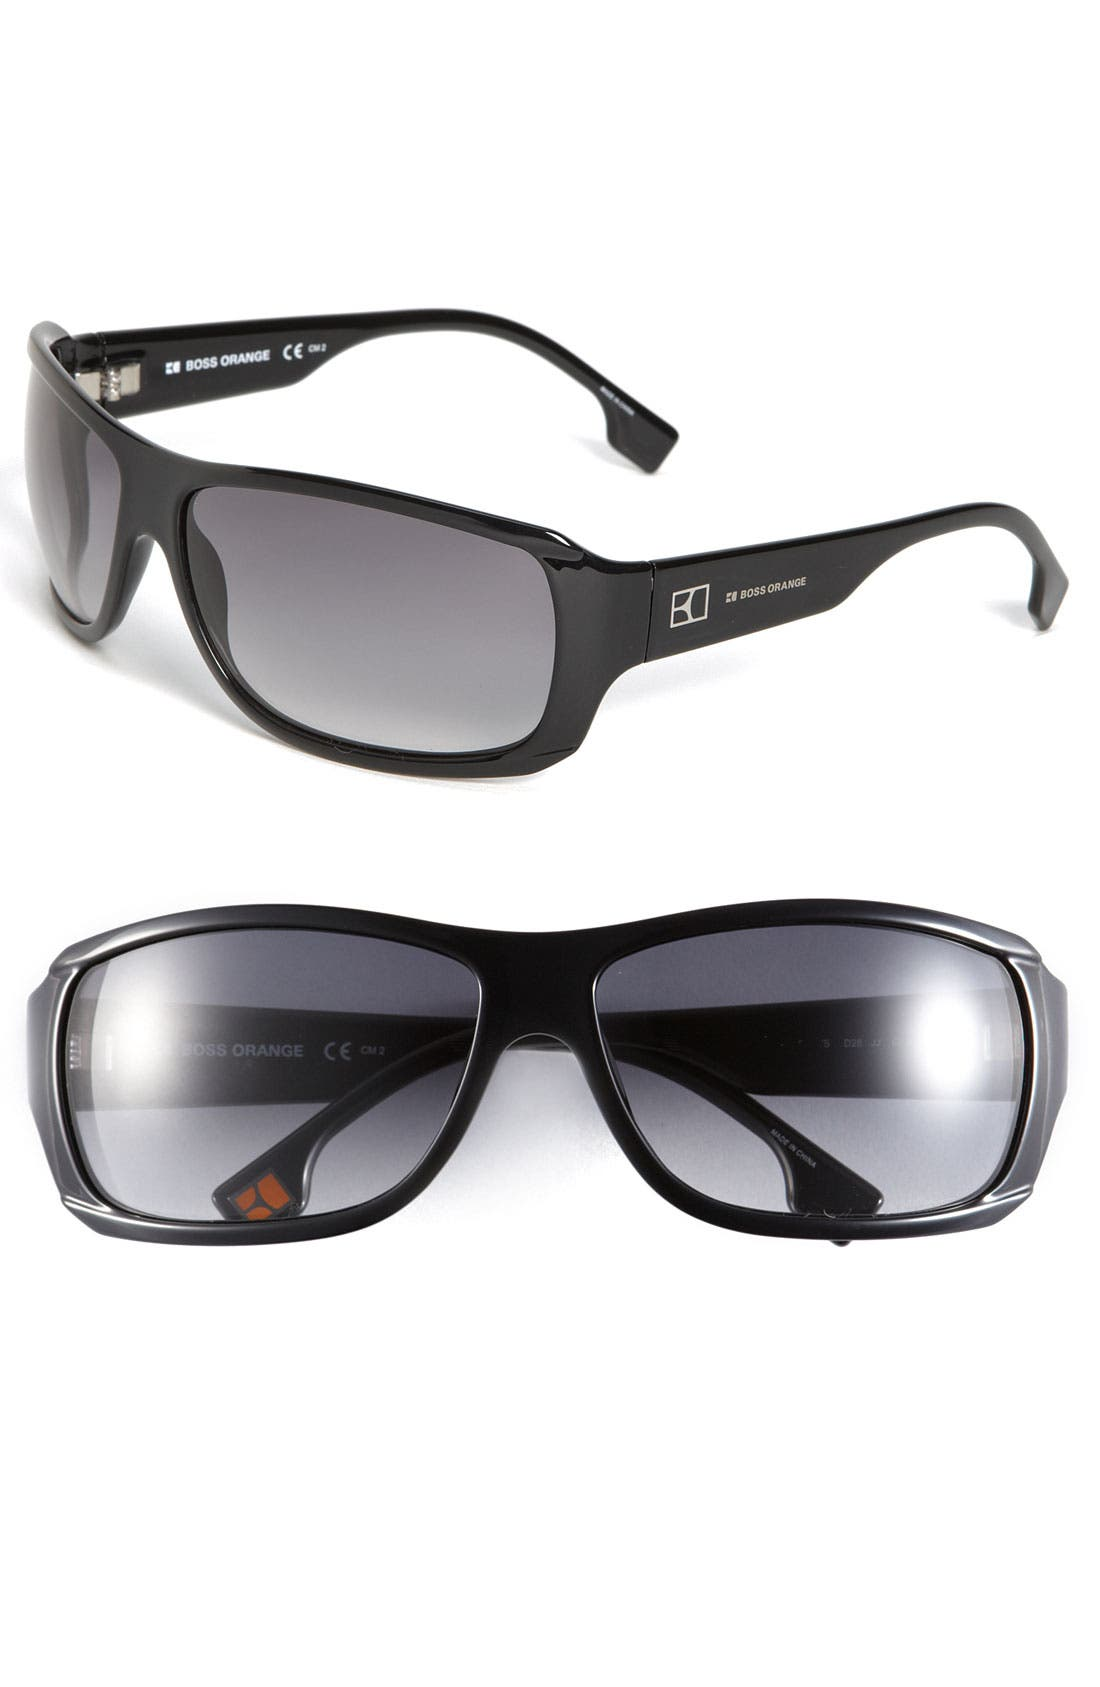 Main Image - BOSS Orange Rectangle Sunglasses